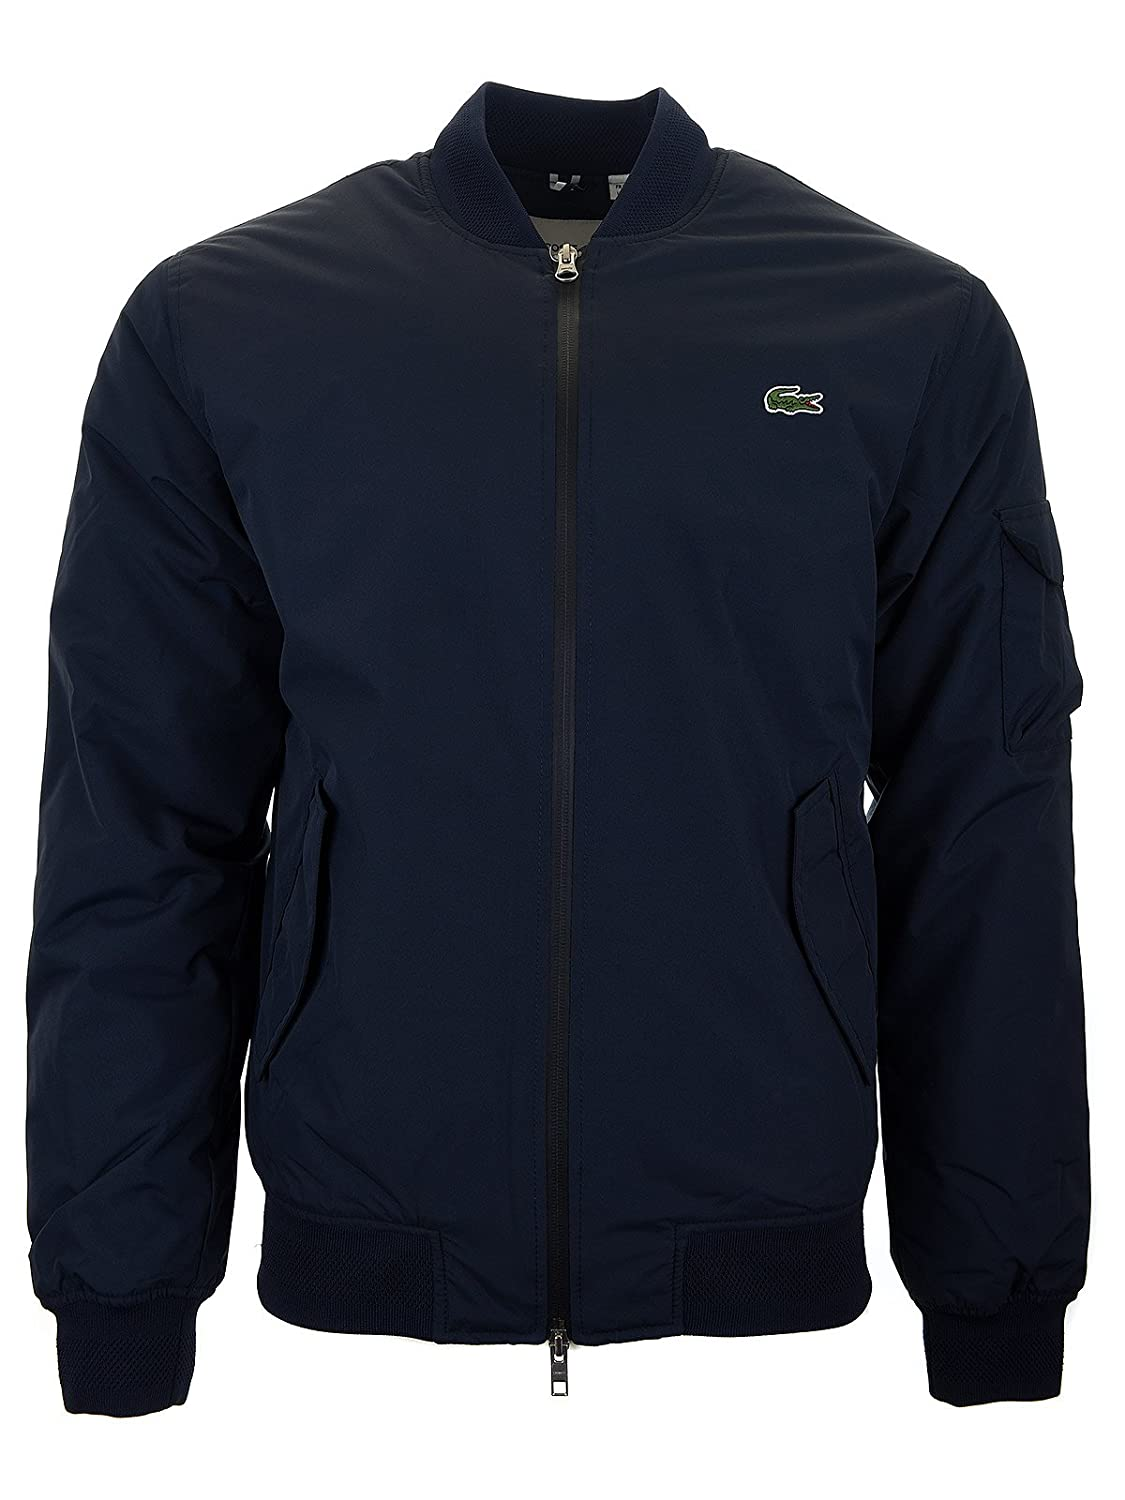 Mens Lacoste Jacket | BH9477 | 423 | Navy | Blue